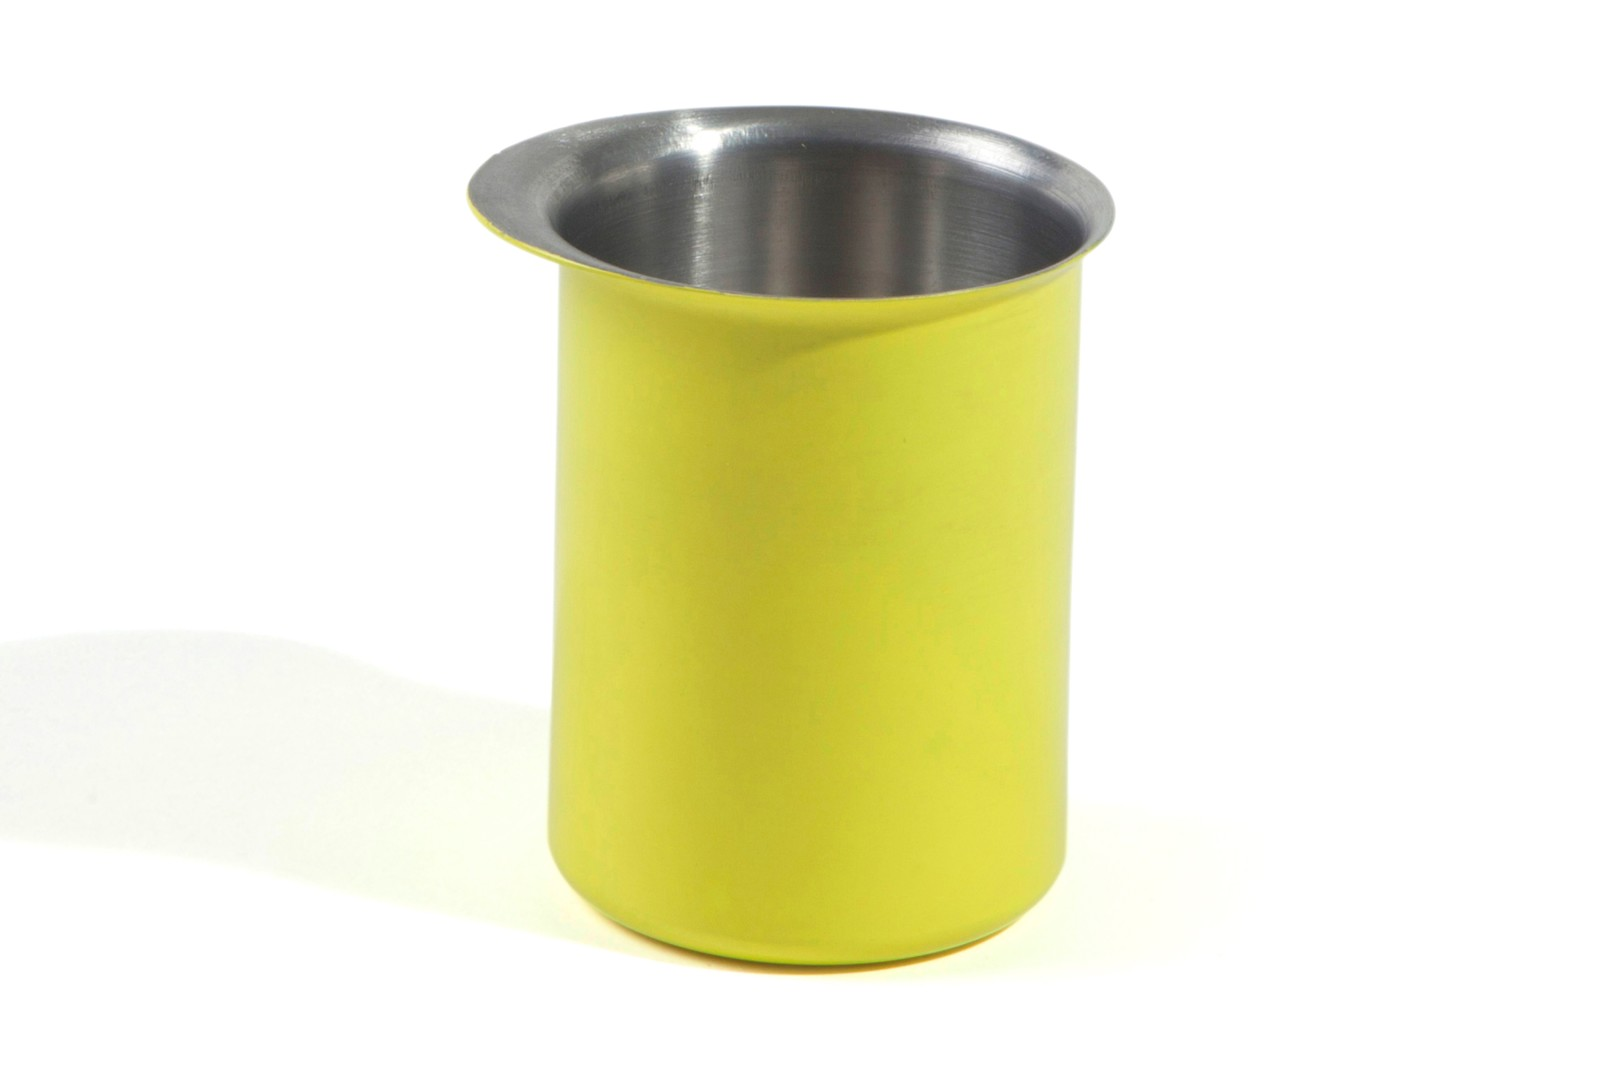 Ayasa Storage Container Yellow, 0.35L